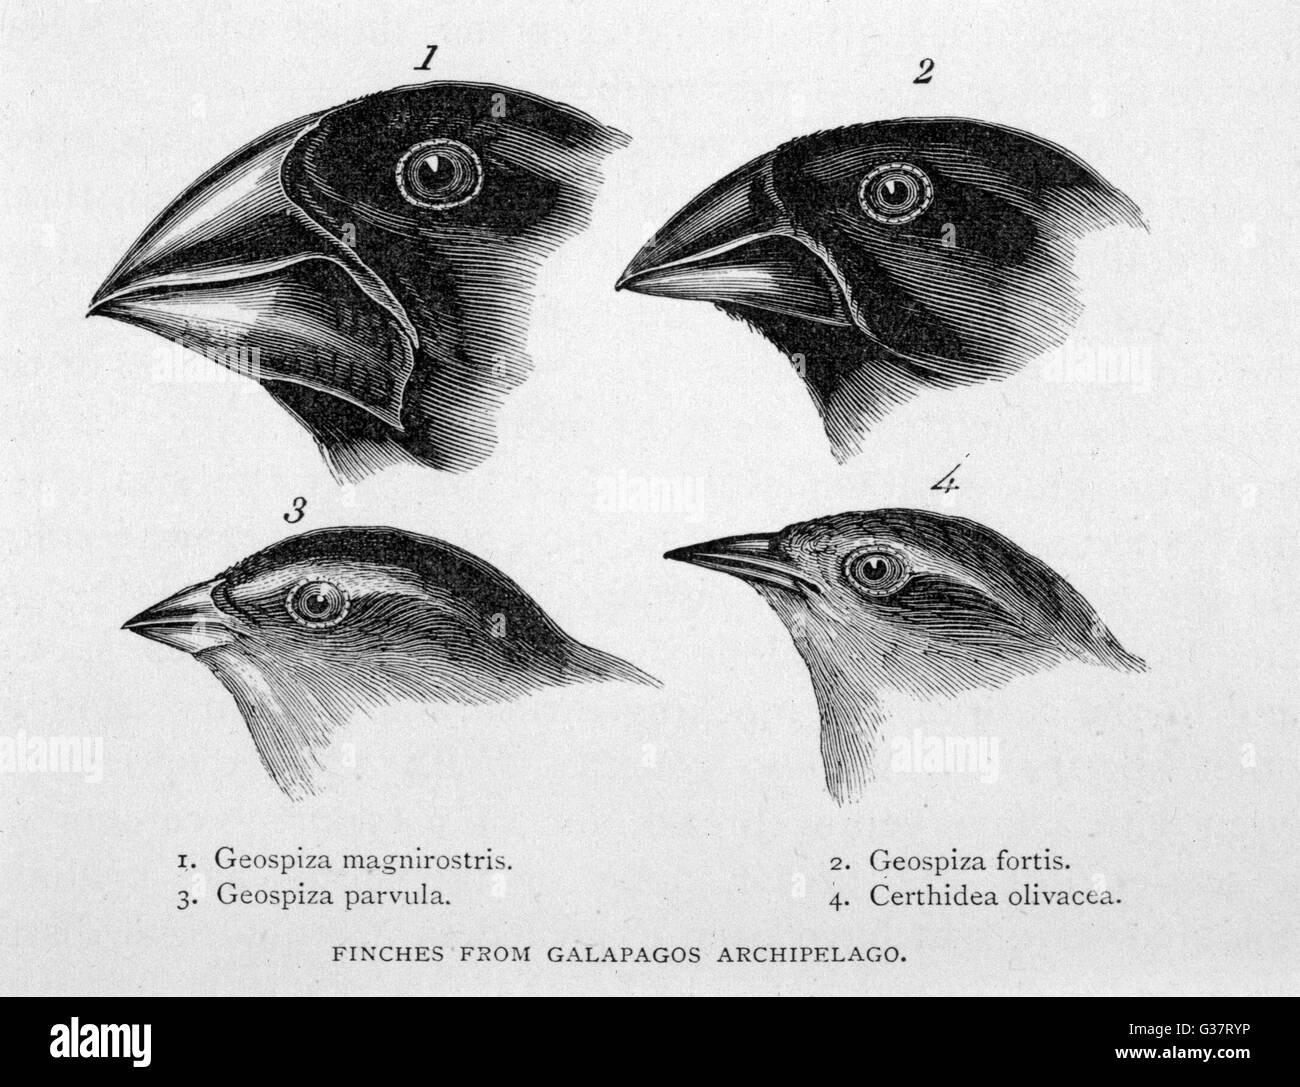 Finches from the Galapagos Islands observed by Darwin         Date: 1835 - Stock Image